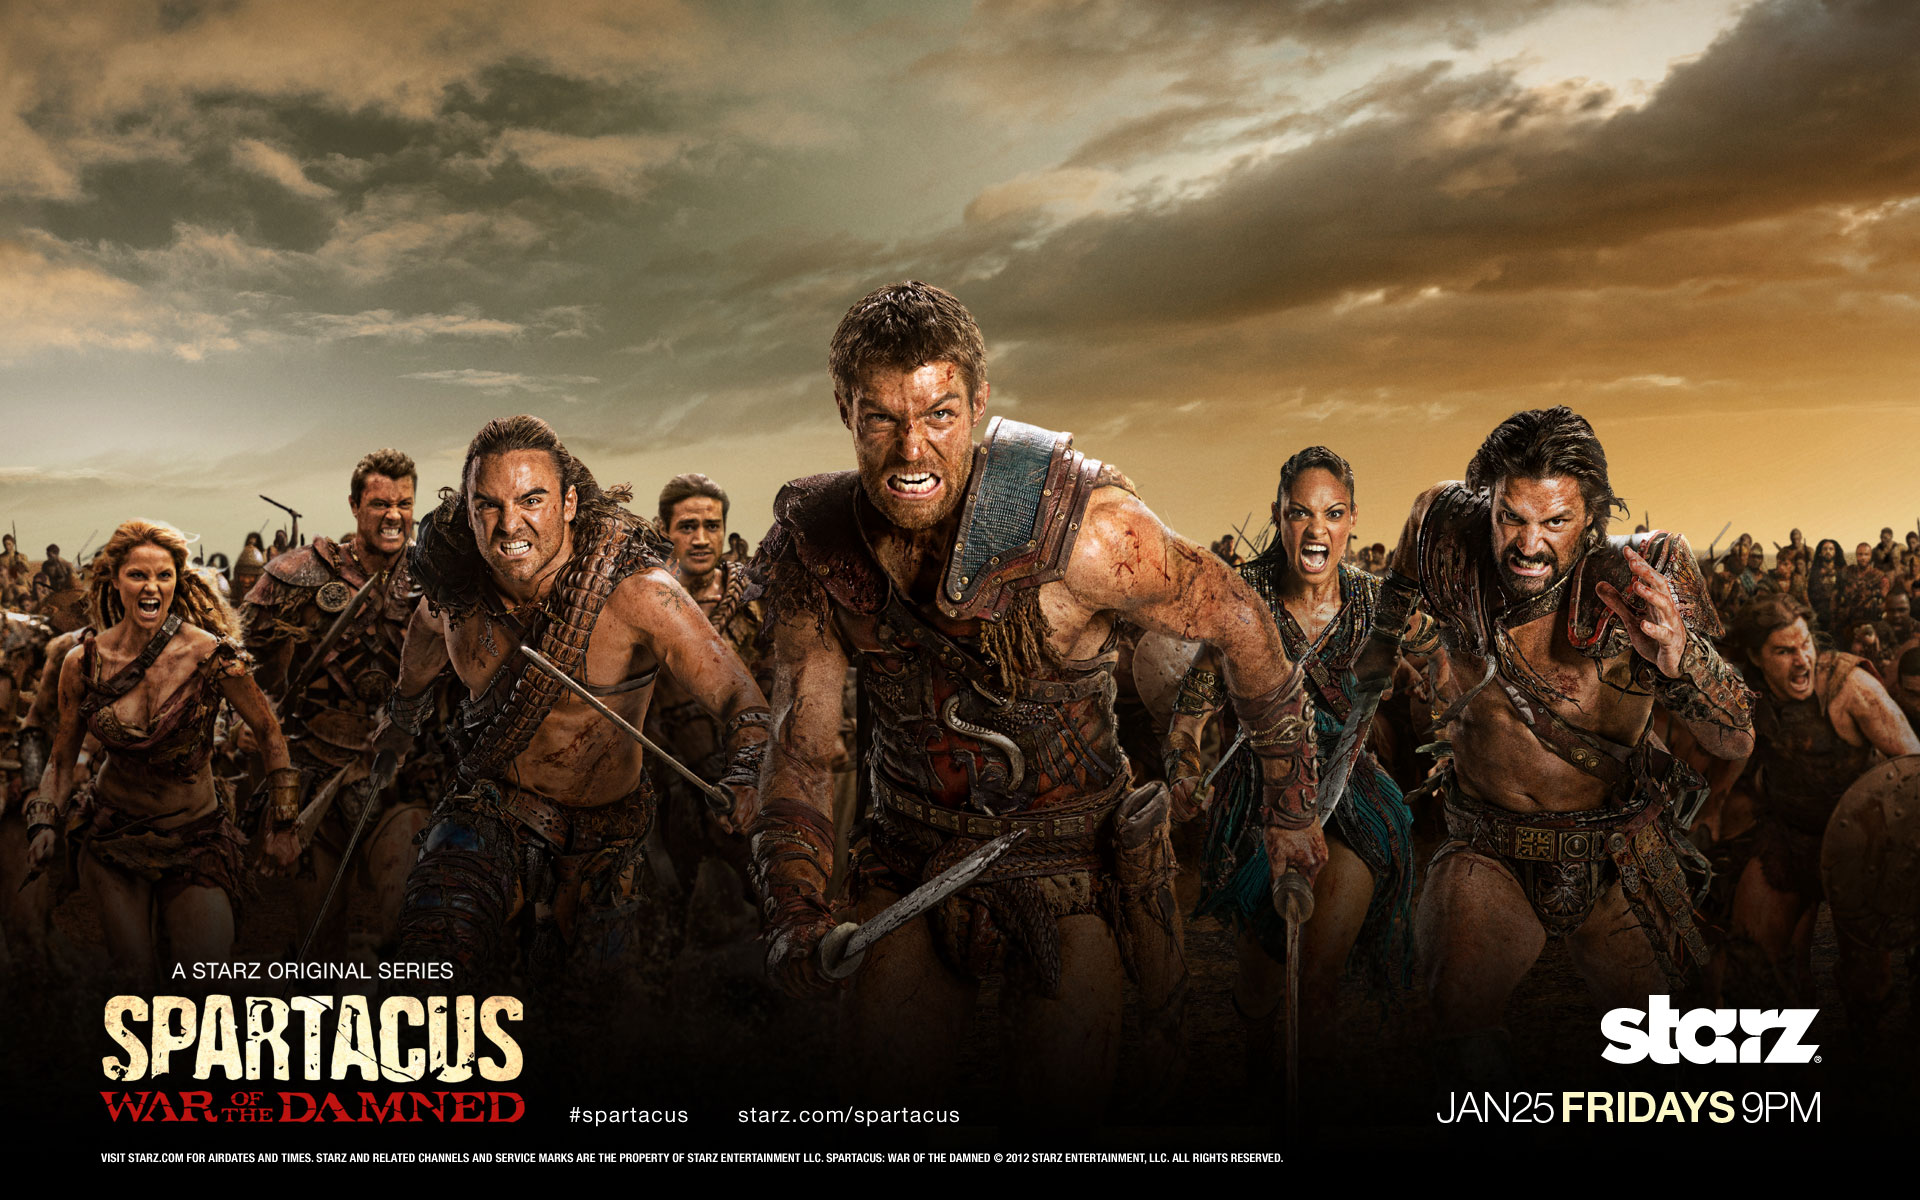 Spartacus-War-of-the-Damned-spartacus-blood-and-sand-33549642-1920